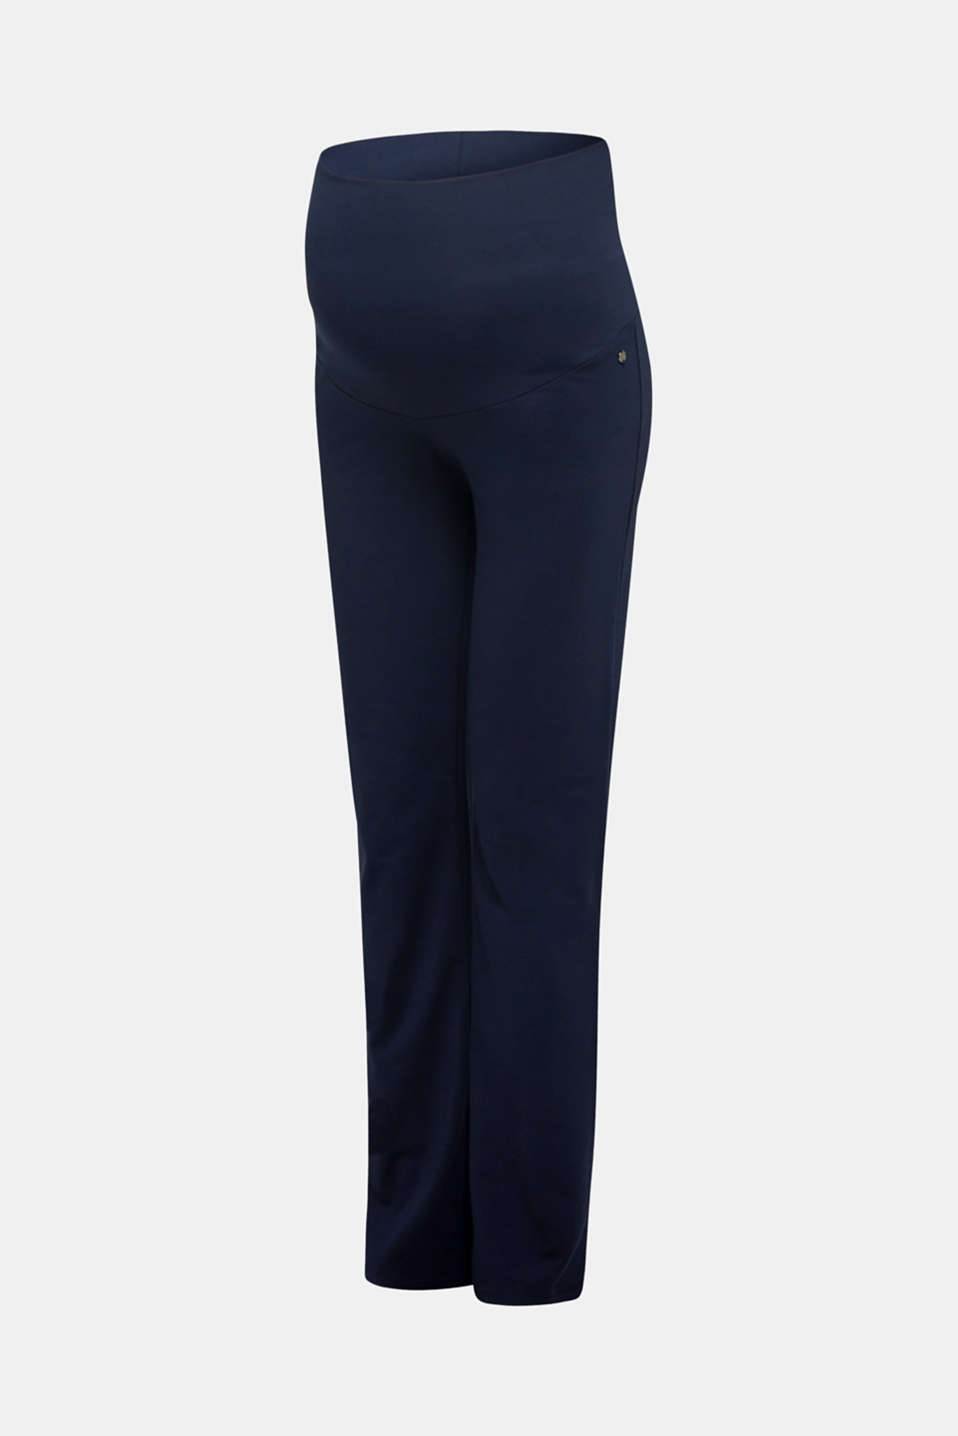 Stretch jersey trousers with an over-bump waistband, LCNIGHT BLUE, detail image number 4